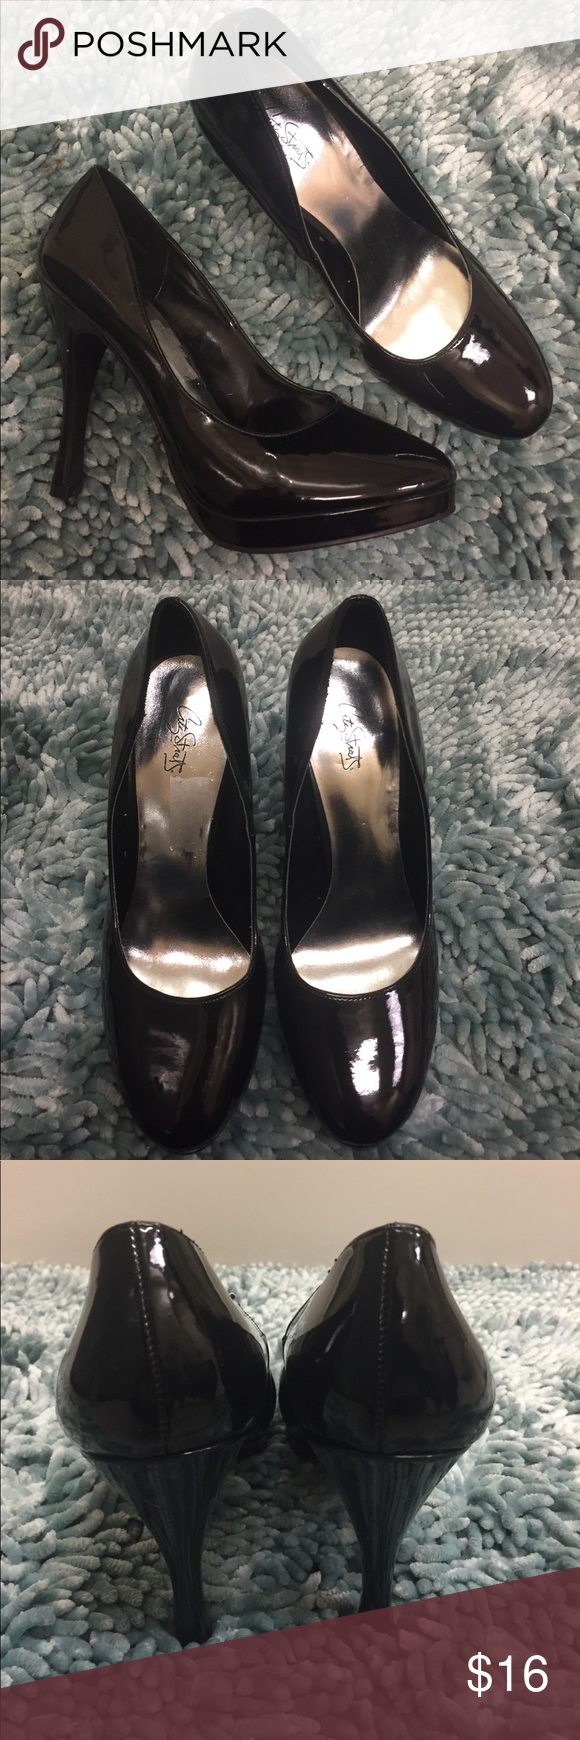 NWOT Classic black platform pumps w/ round toe These are a classic stiletto shoe meant to go with everything! They are a black pump or heel with a small platform to make them more comfortable! They have never been worn (only wear is from sitting in the closet!). They have a round toe and shiny black appearance. Offers welcome! City Streets Shoes Heels